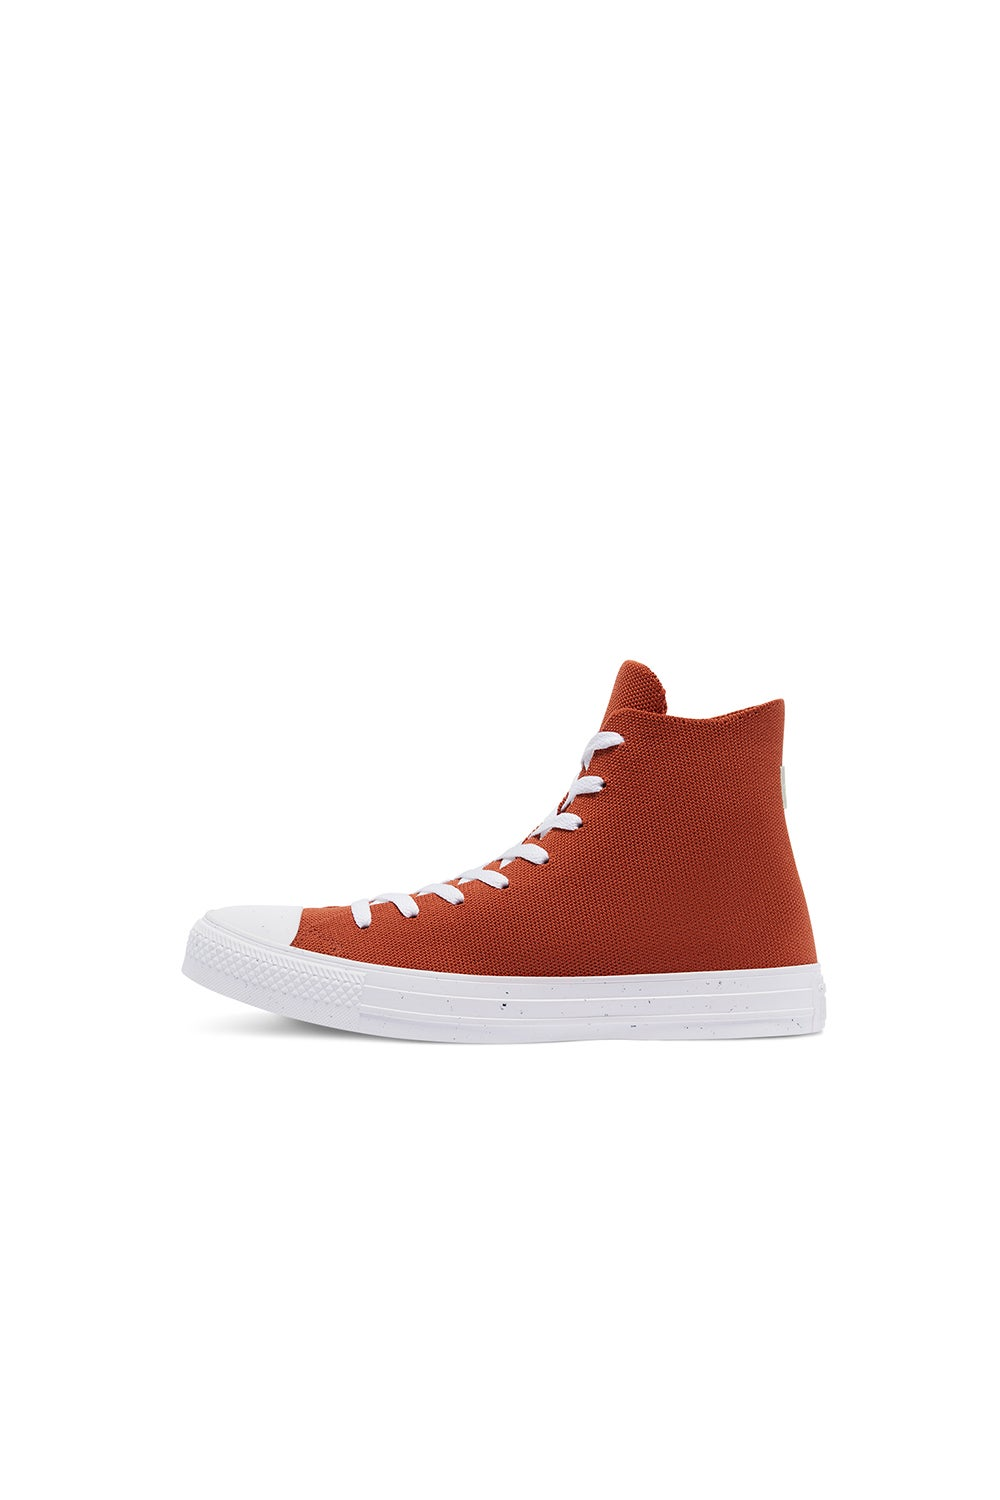 Converse Chuck Taylor Renew Knit High Red Bark